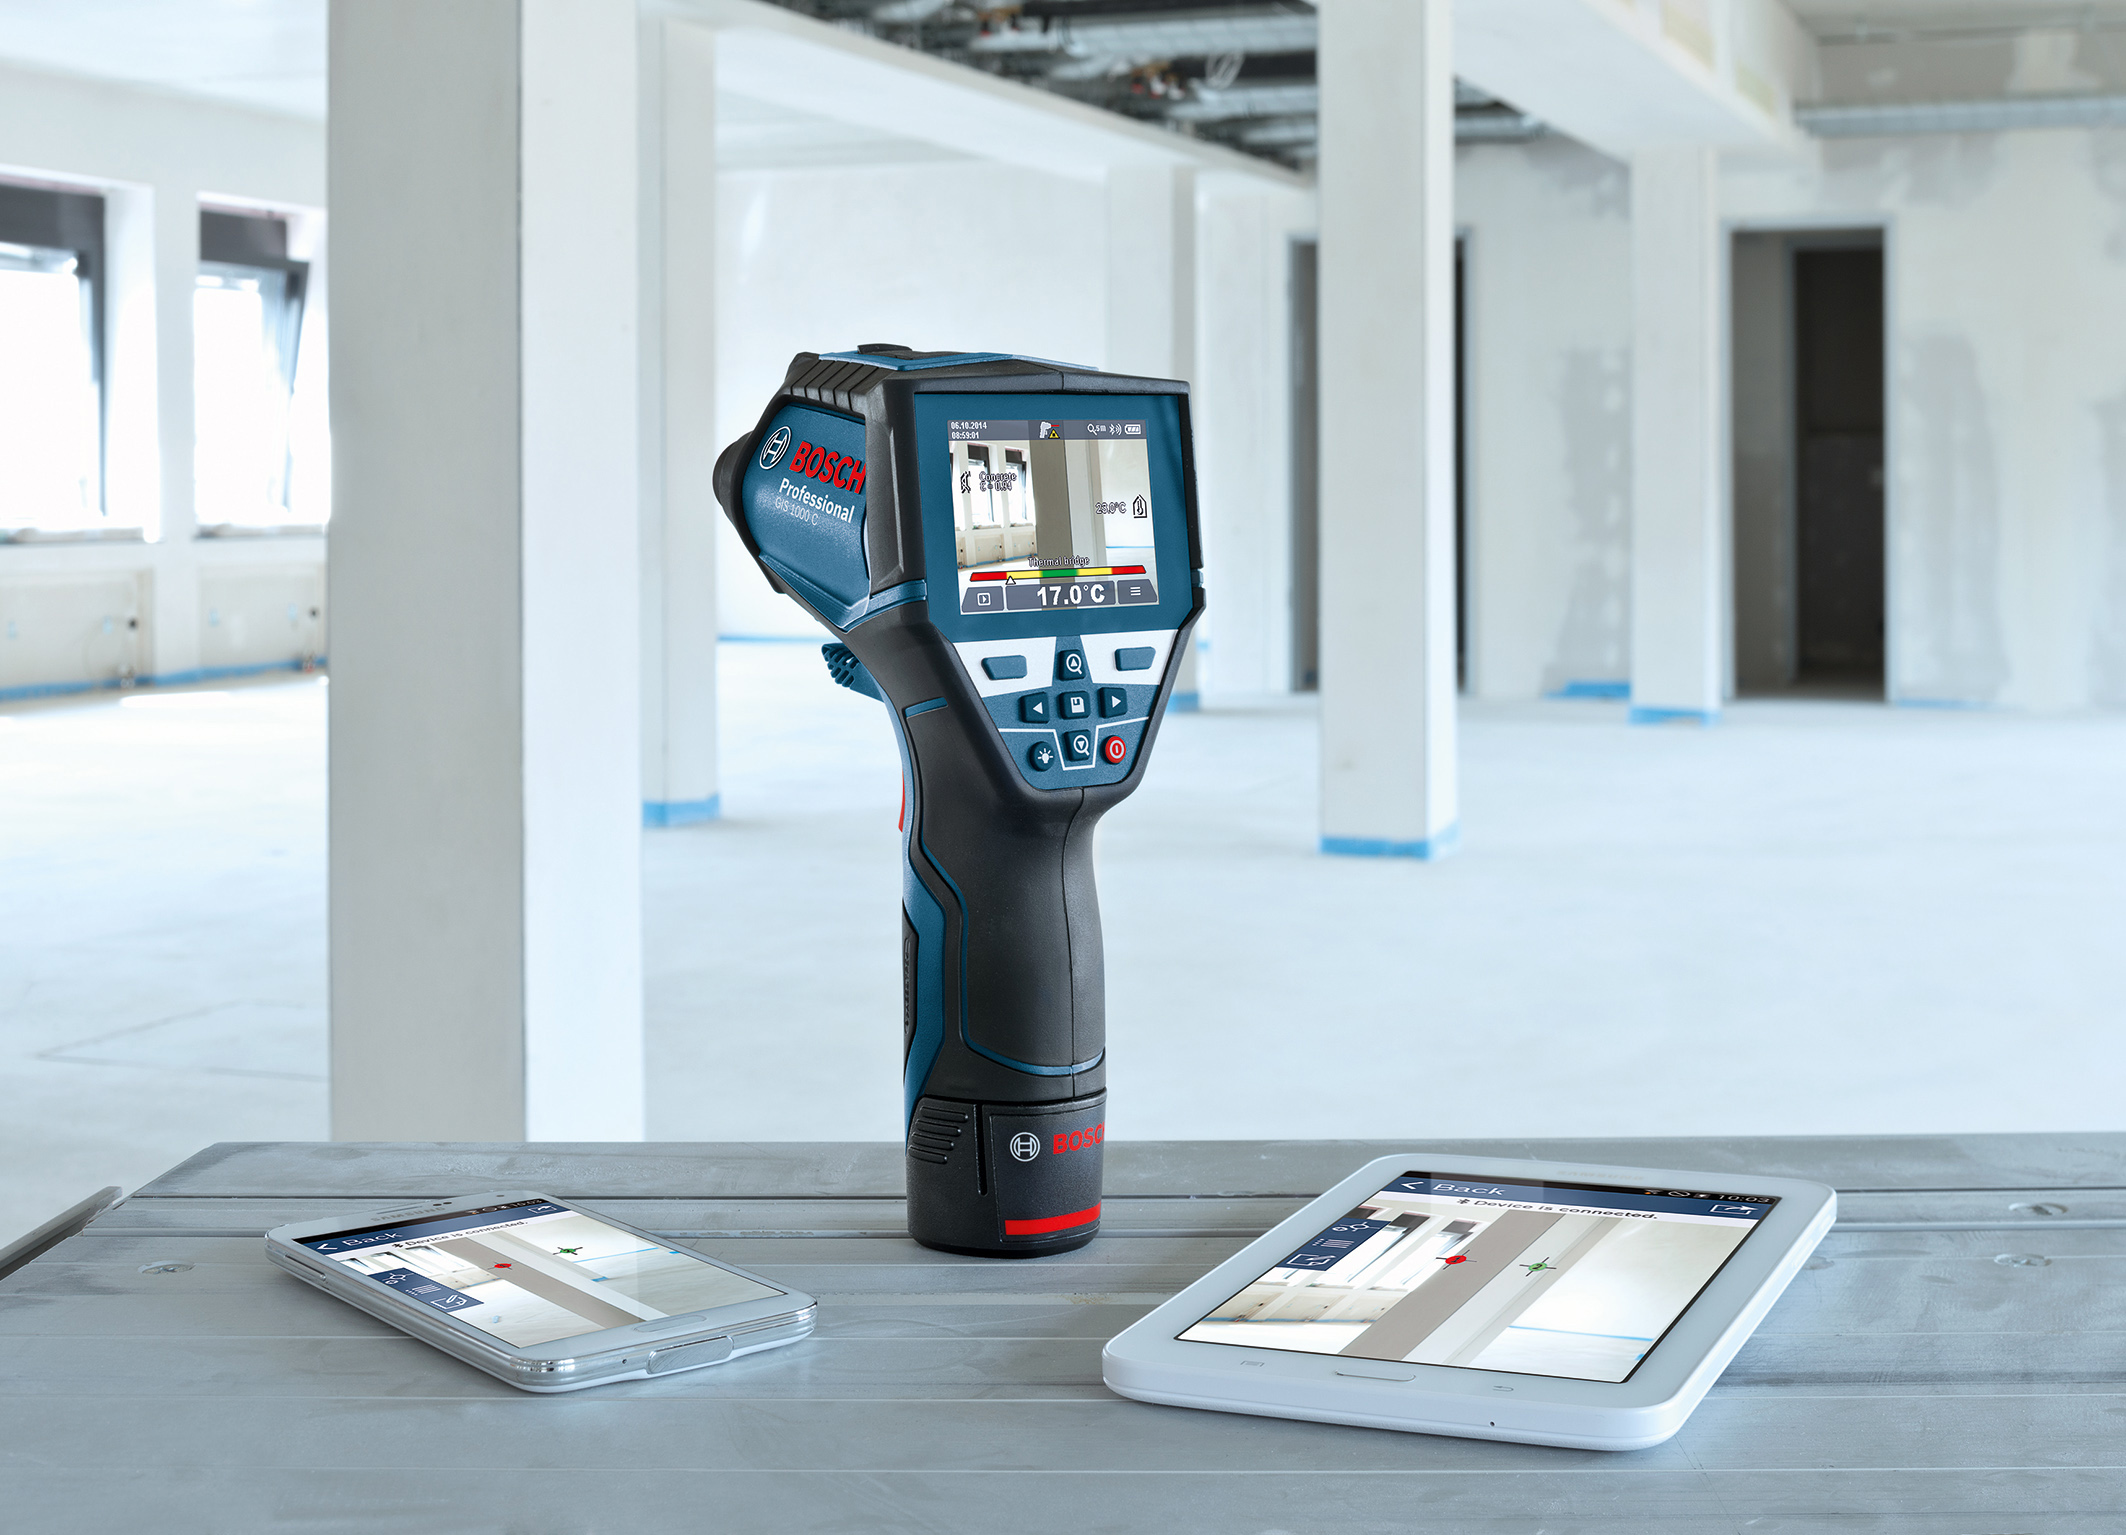 Thermo camera and thermo detector from Bosch - Bosch Media Service